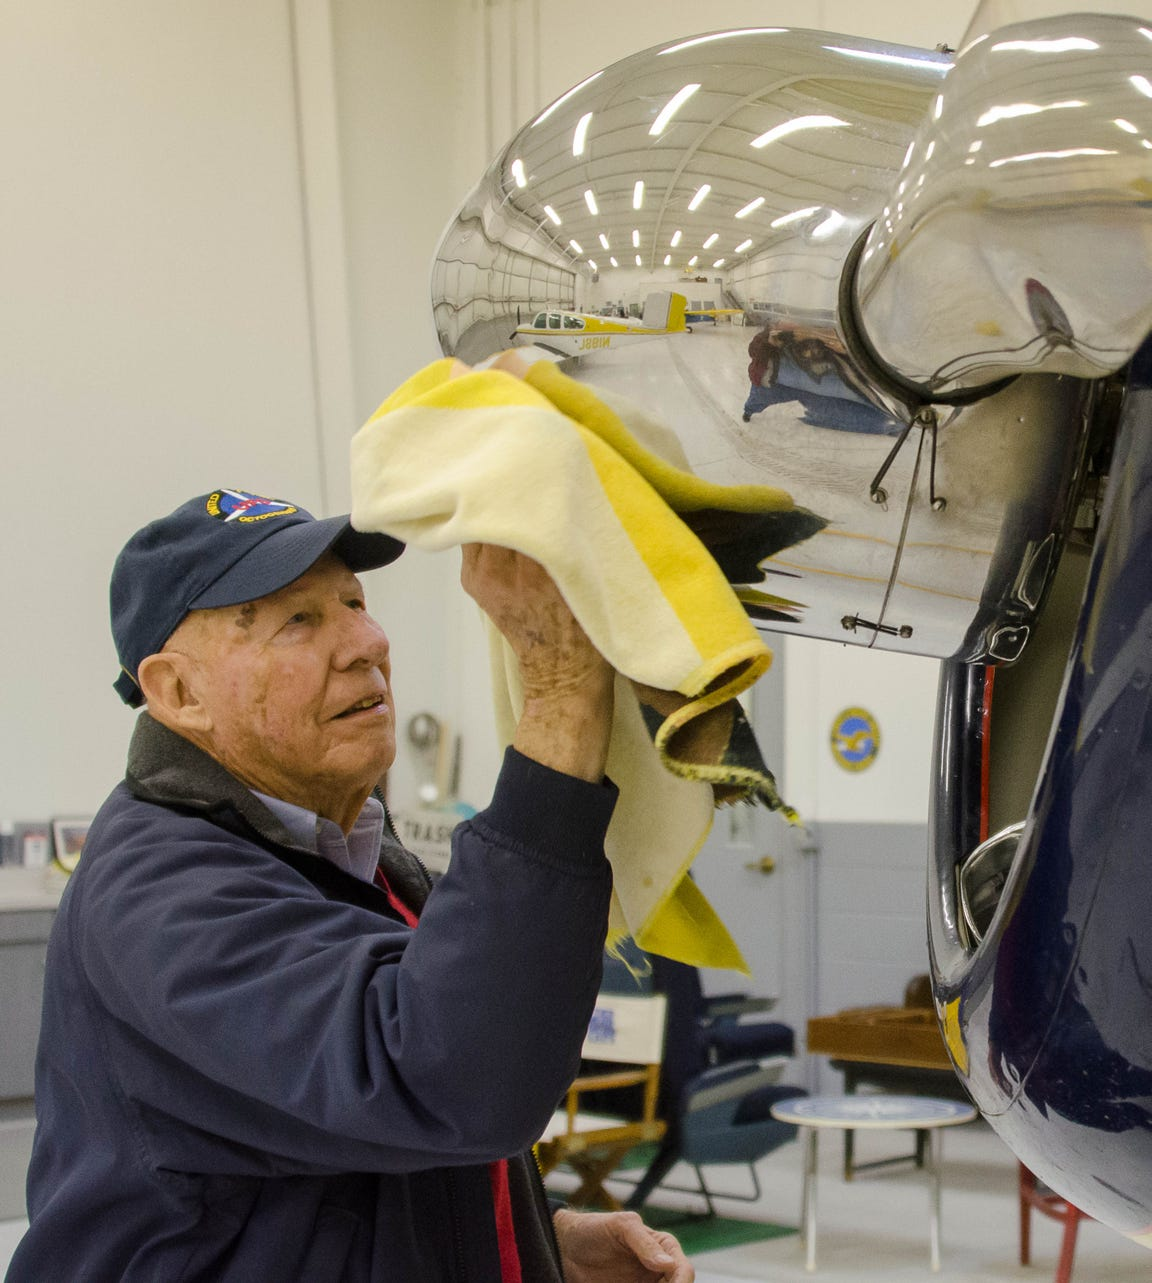 Jim Gorman polishes the propeller dome of his 1941 Beechcraft Staggerwing biplane that he still flies. Dave Polcyn/News Journal file photo